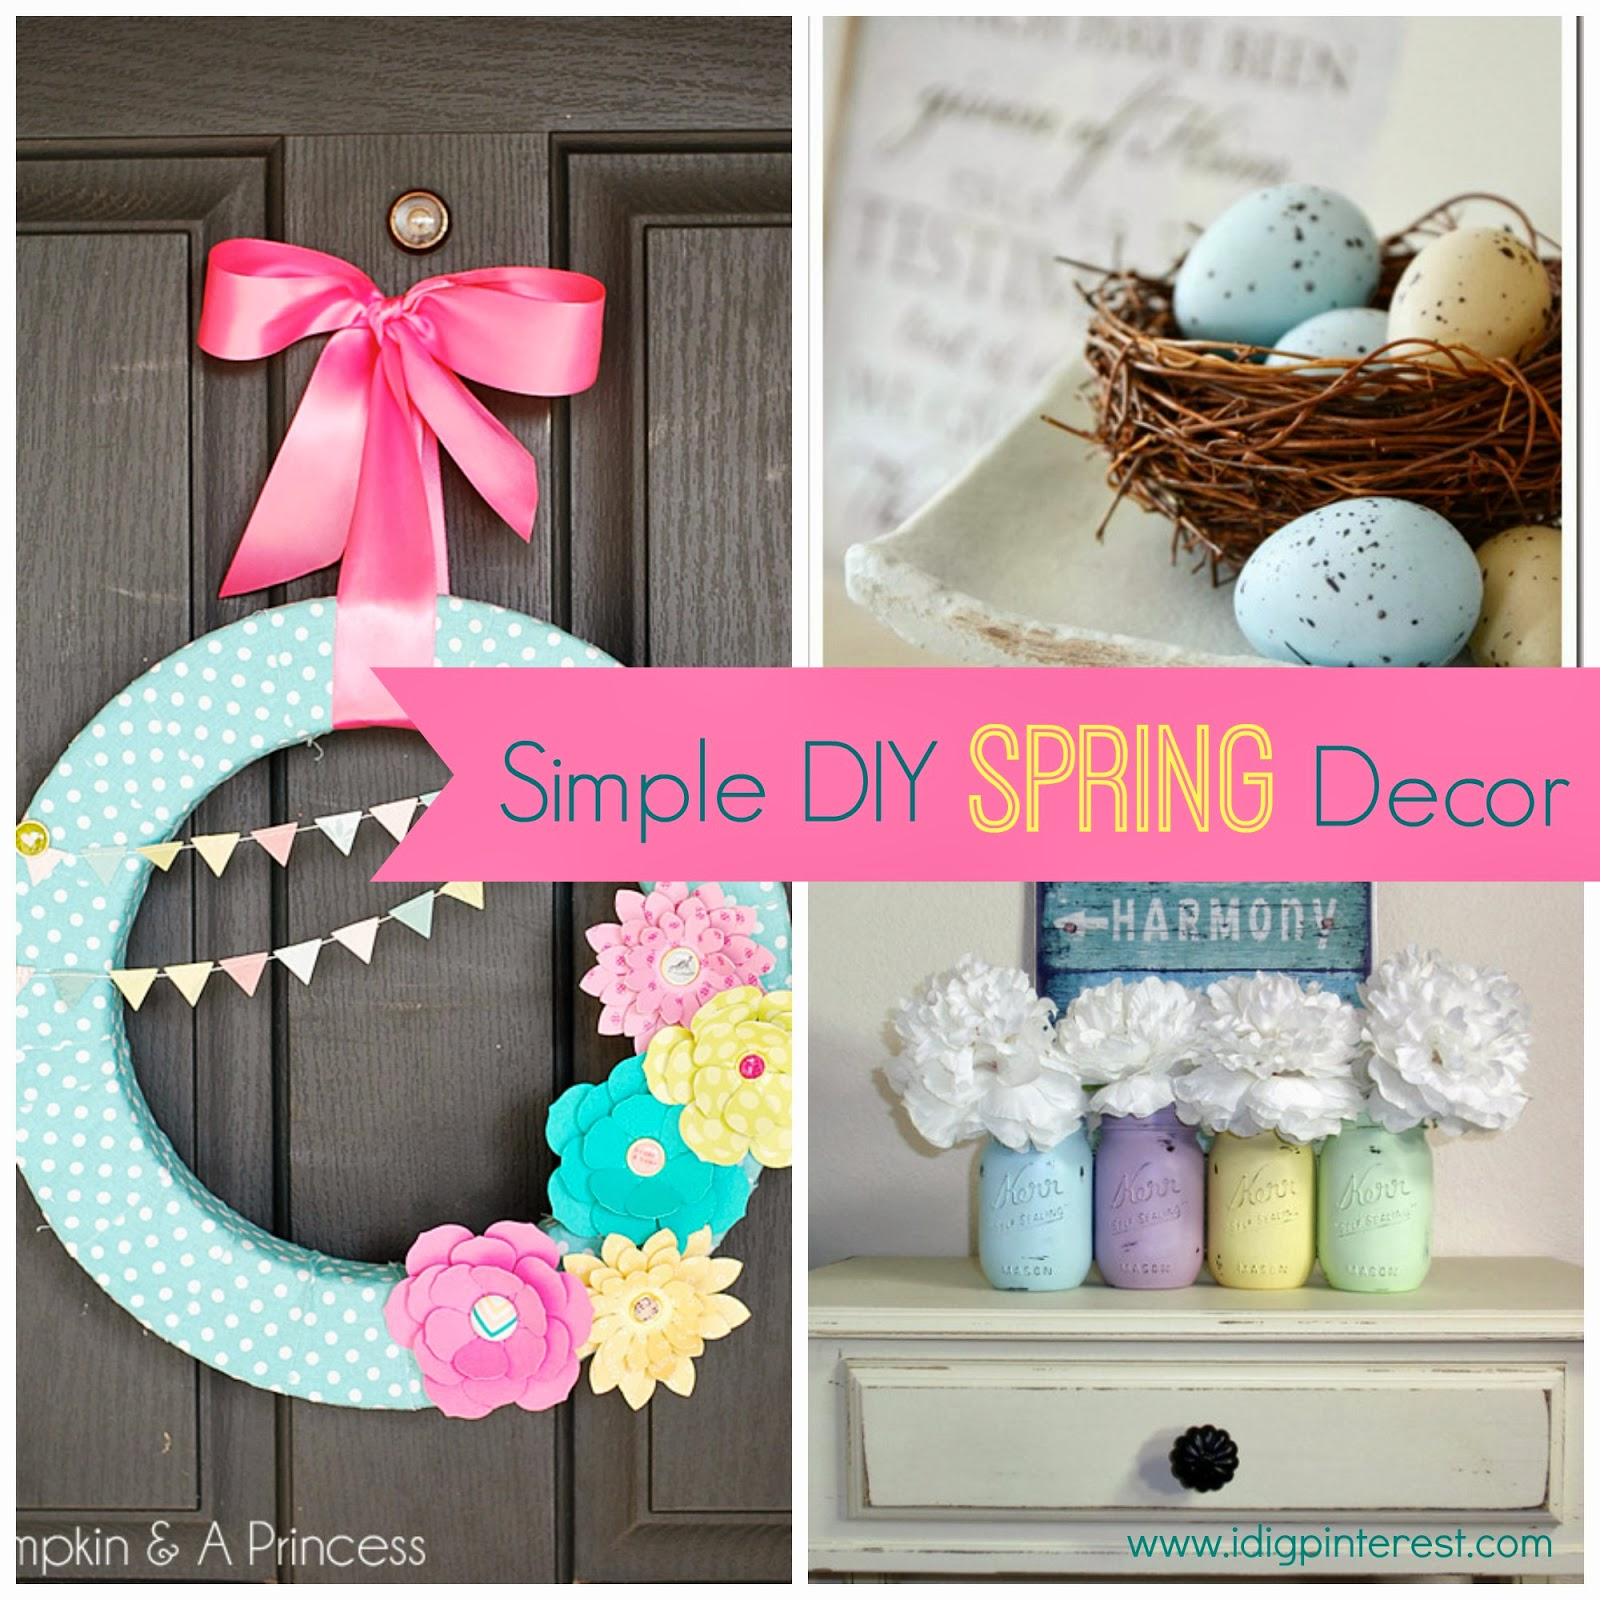 Simple DIY Spring Decor Ideas - I Dig Pinterest